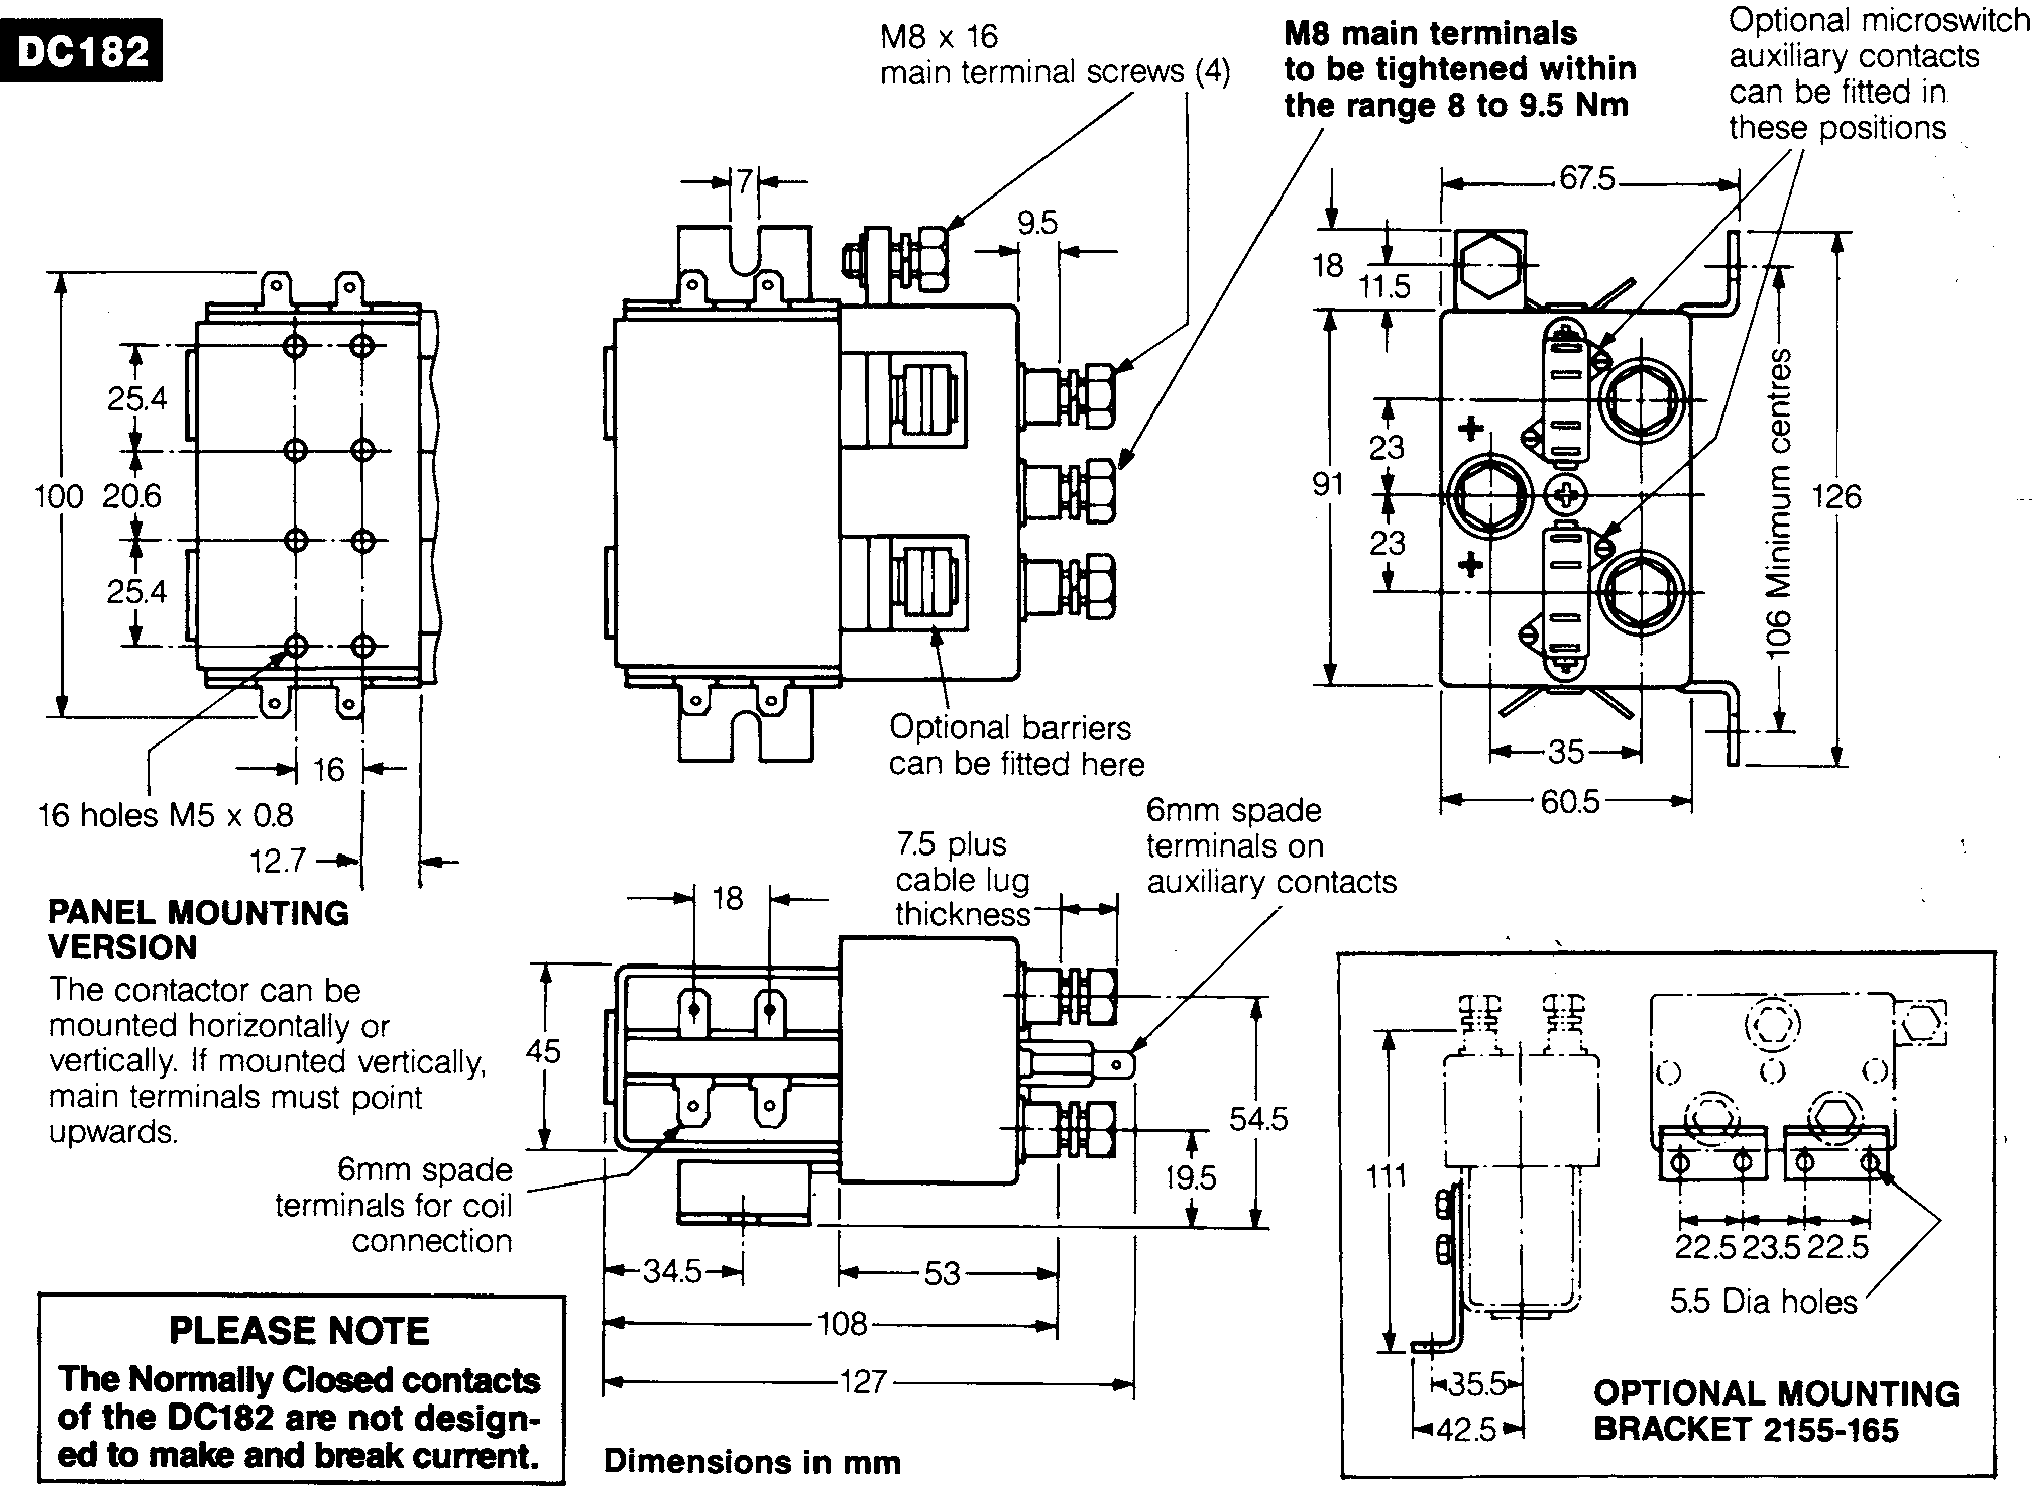 dimensions wiring diagram for reversing contactor the wiring diagram albright contactor wiring diagram at gsmportal.co